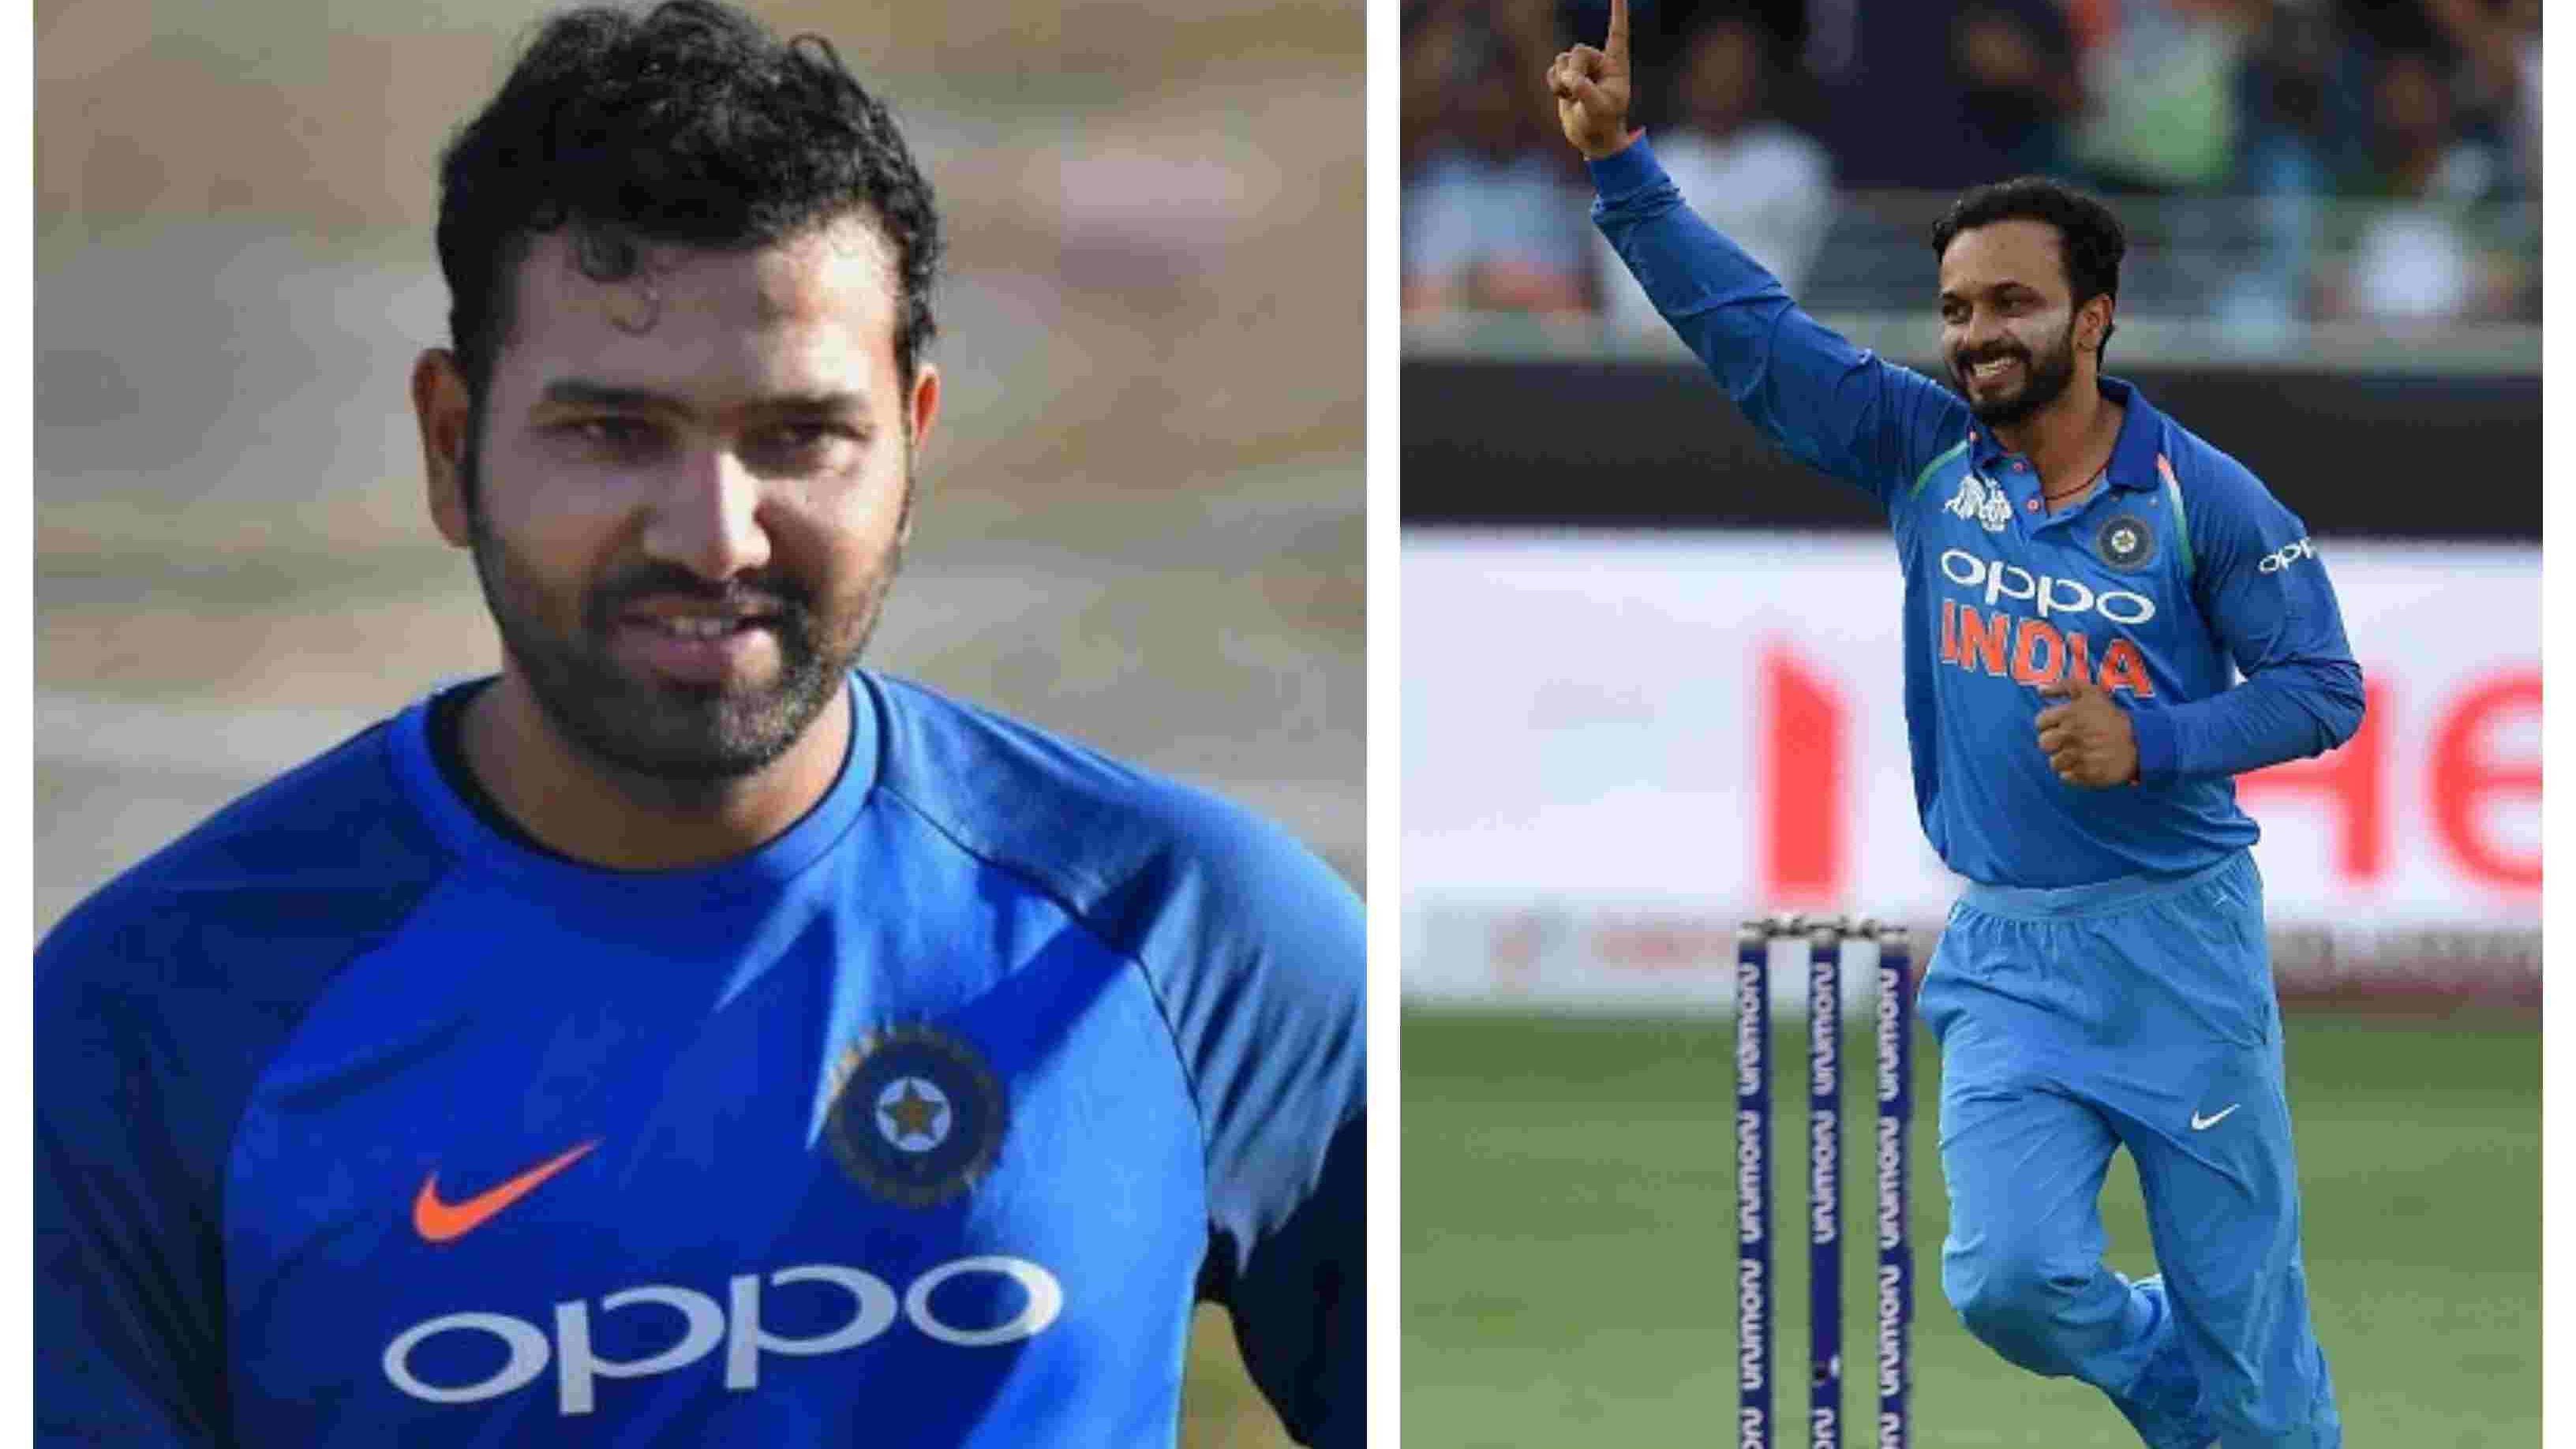 ASIA CUP 2018: Kedar Jadhav's bowling augurs well for the team, says Rohit Sharma